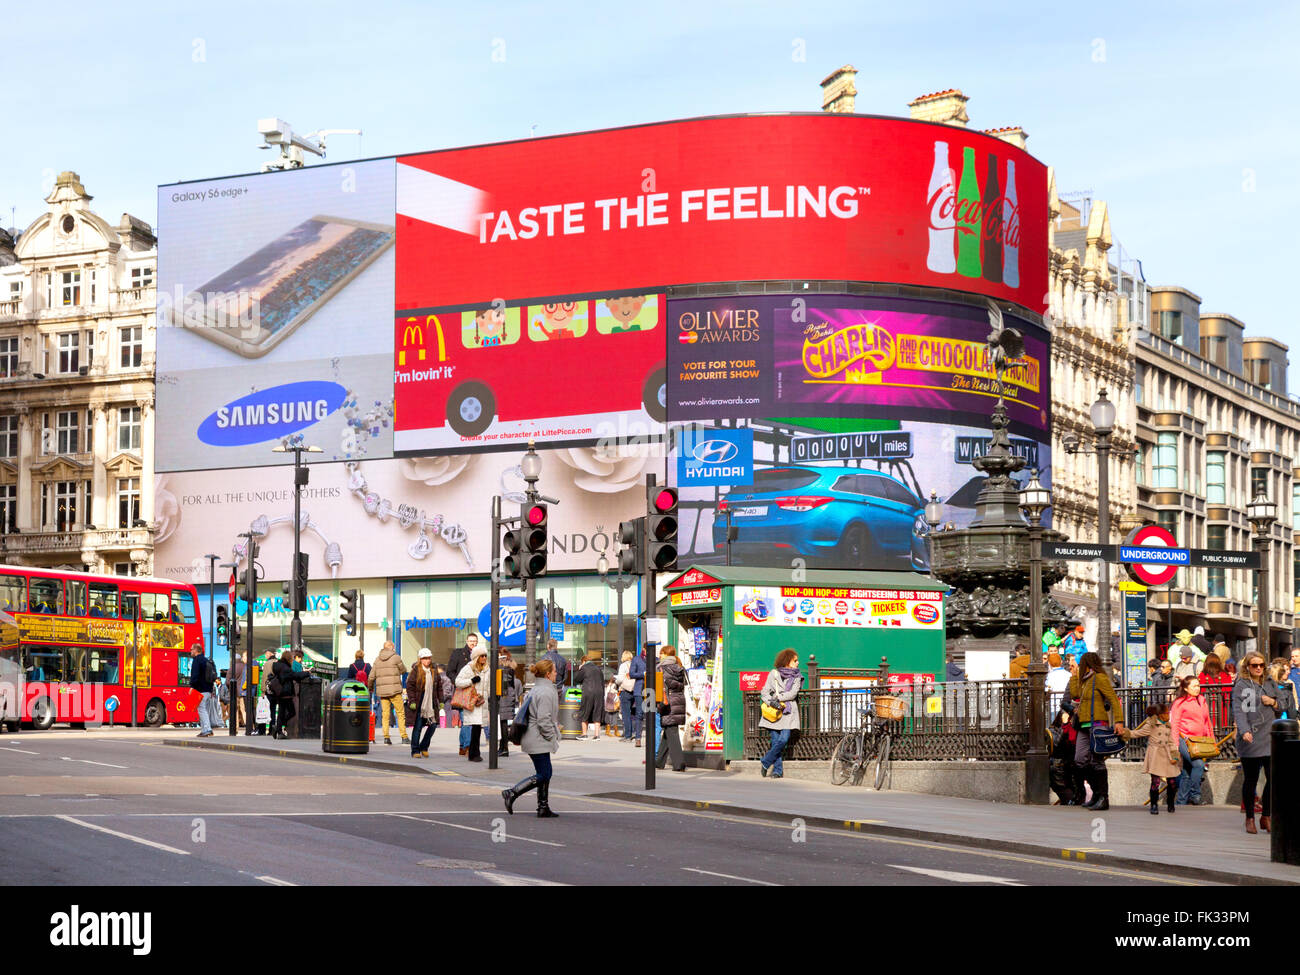 Piccadilly Circus - General view, Piccadilly Circus, London city centre, UK - Stock Image